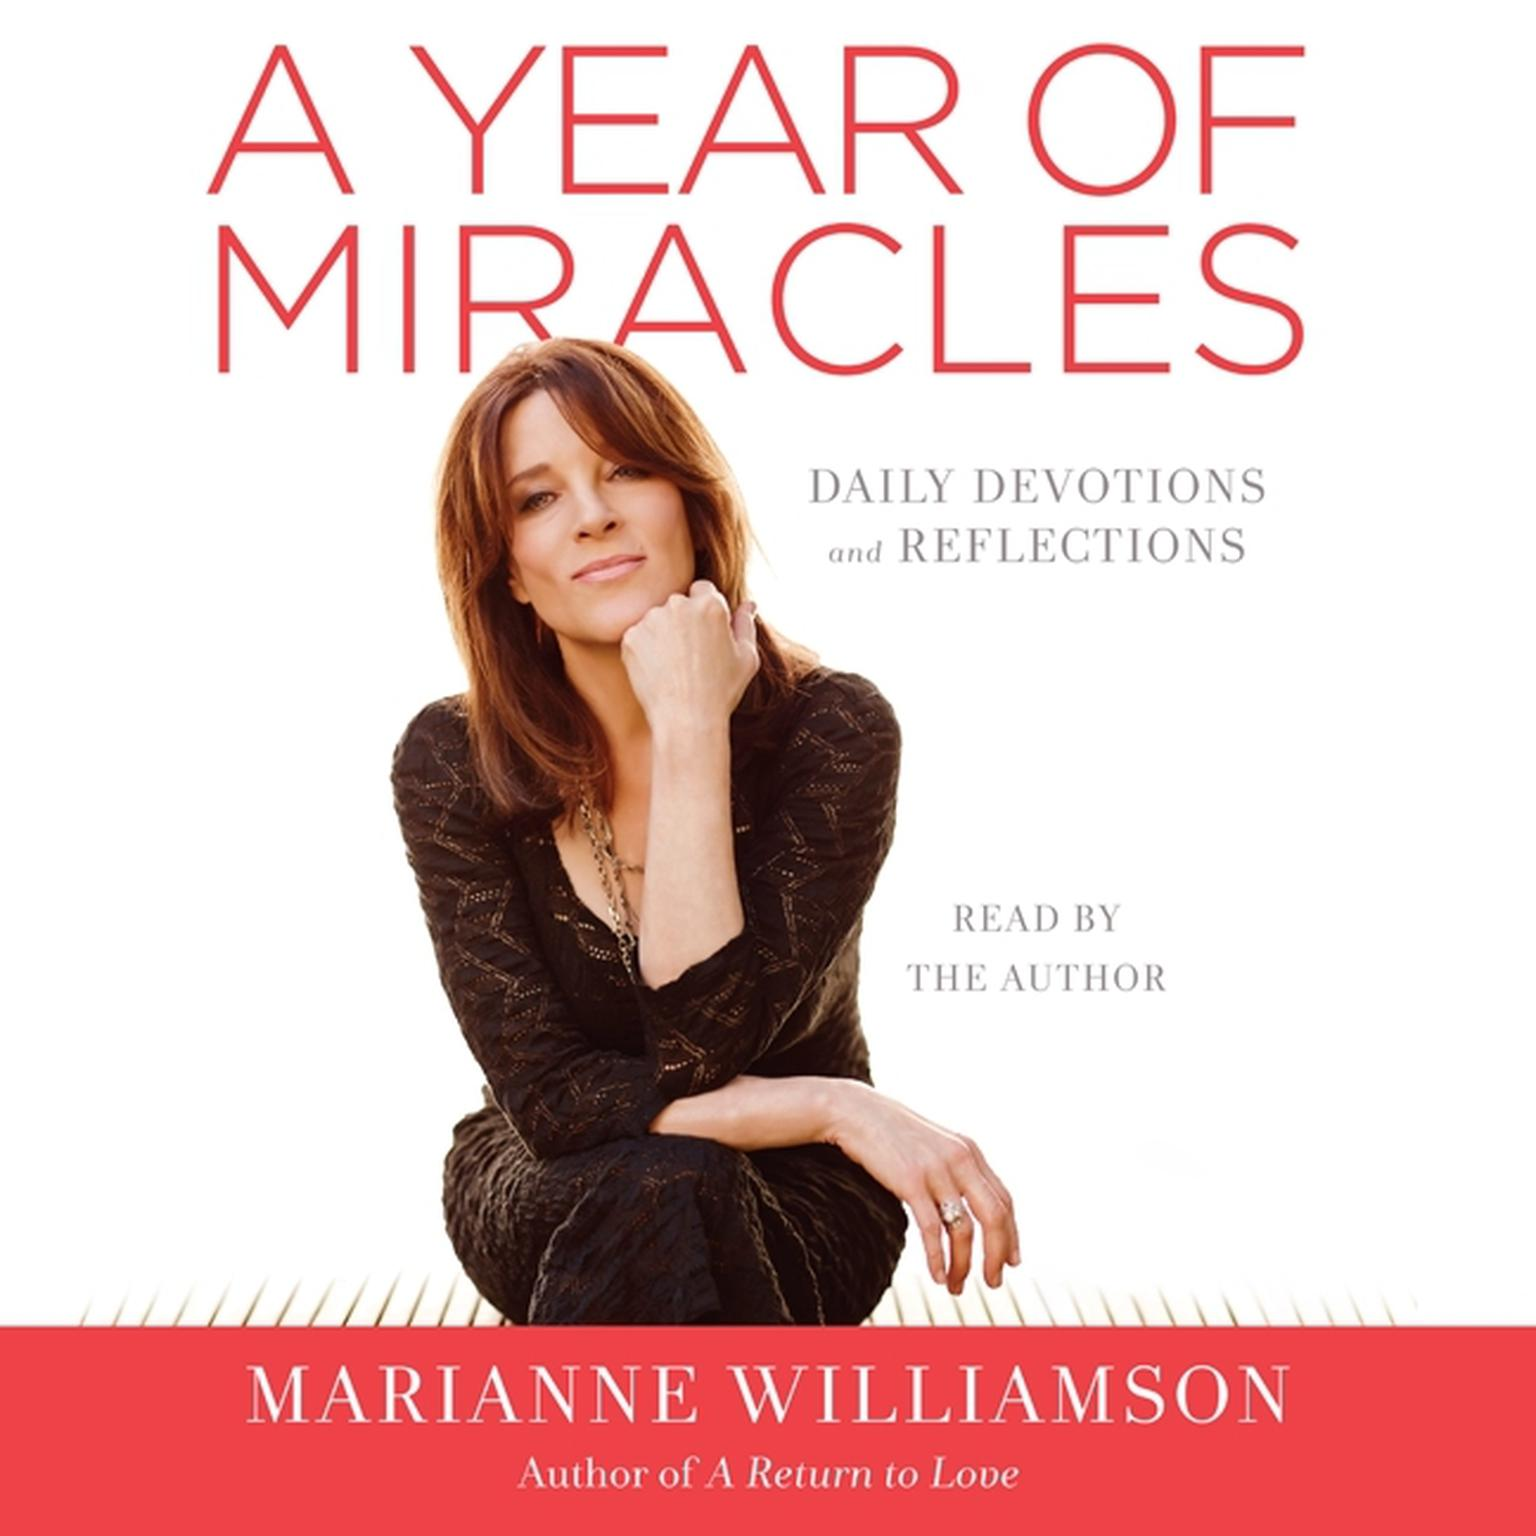 Printable A Year of Miracles: Daily Devotions and Reflections Audiobook Cover Art